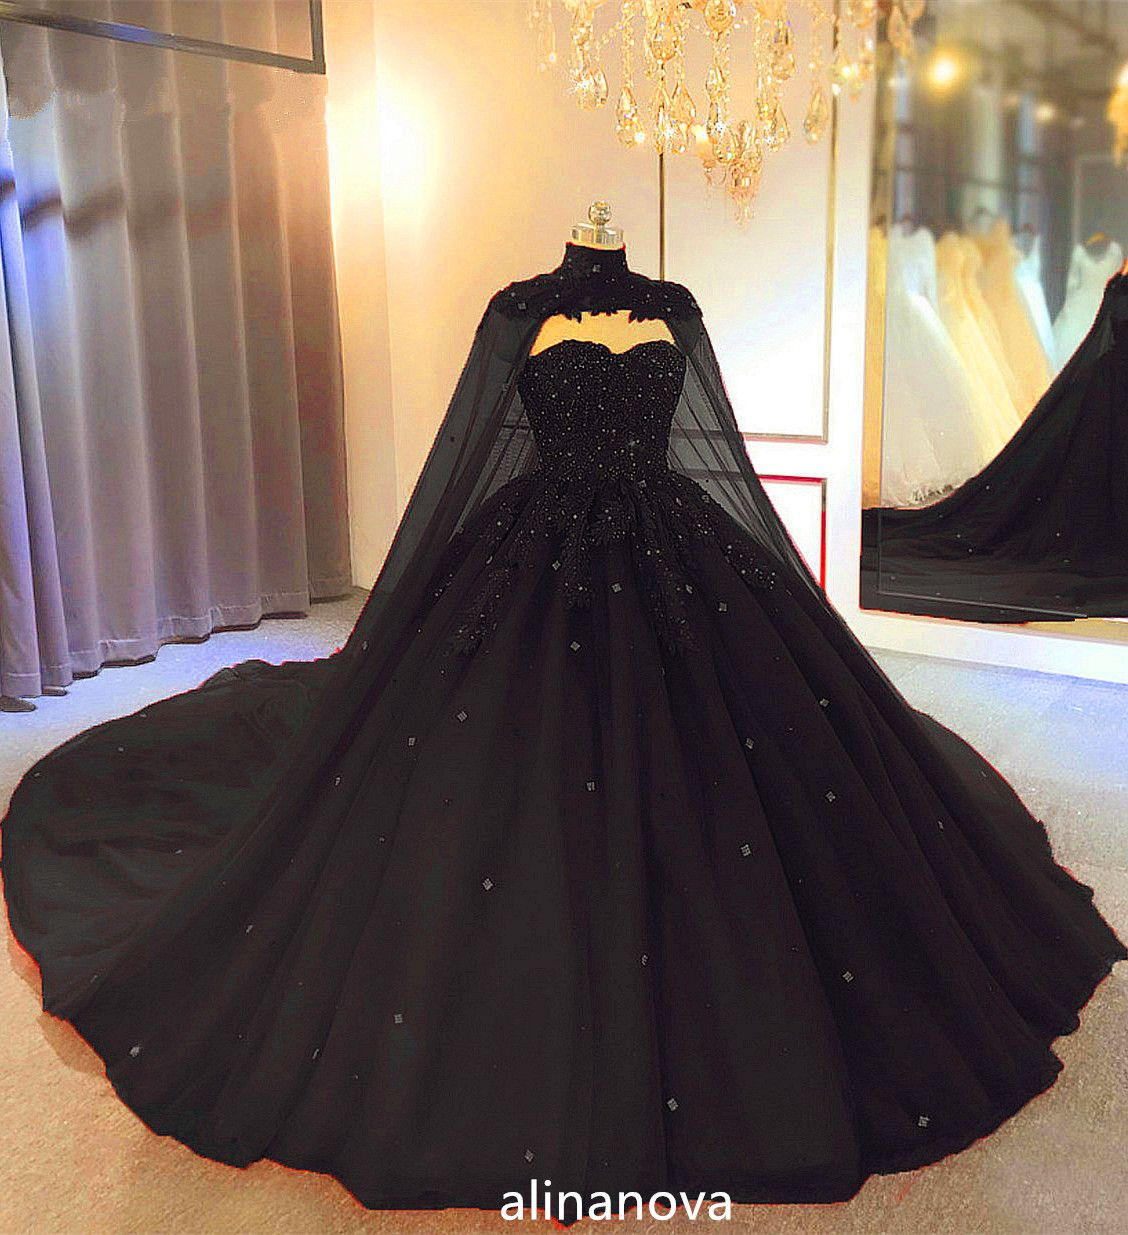 Tulle Ball Gown Wedding Dress With Cape Ball Gowns Wedding Princess Ball Gowns Gowns [ 1235 x 1128 Pixel ]